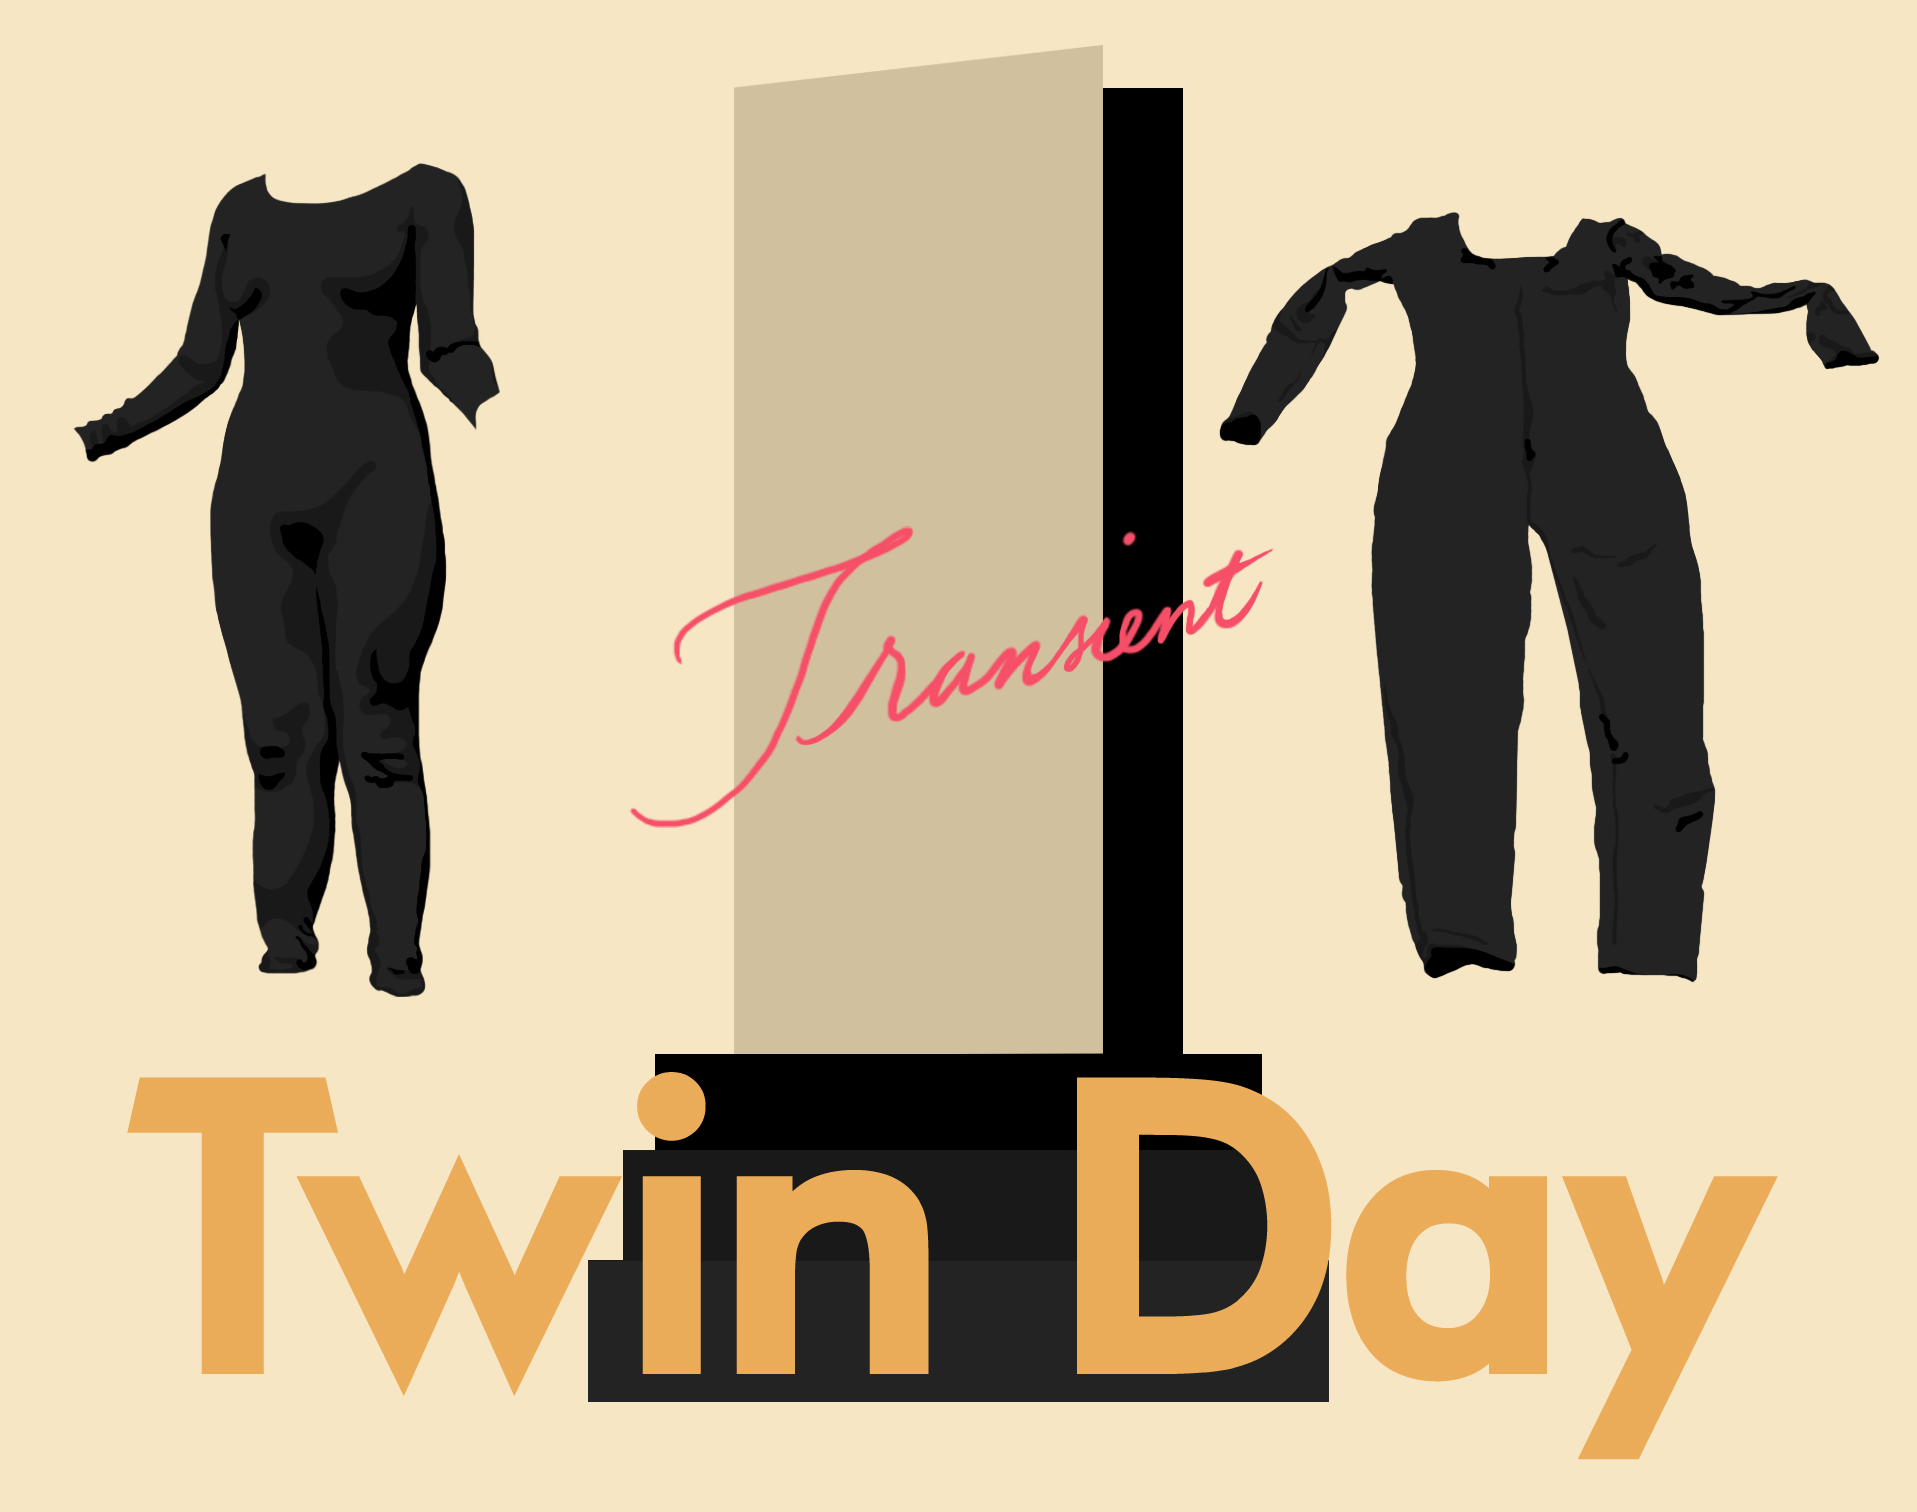 twin-day-banner-image